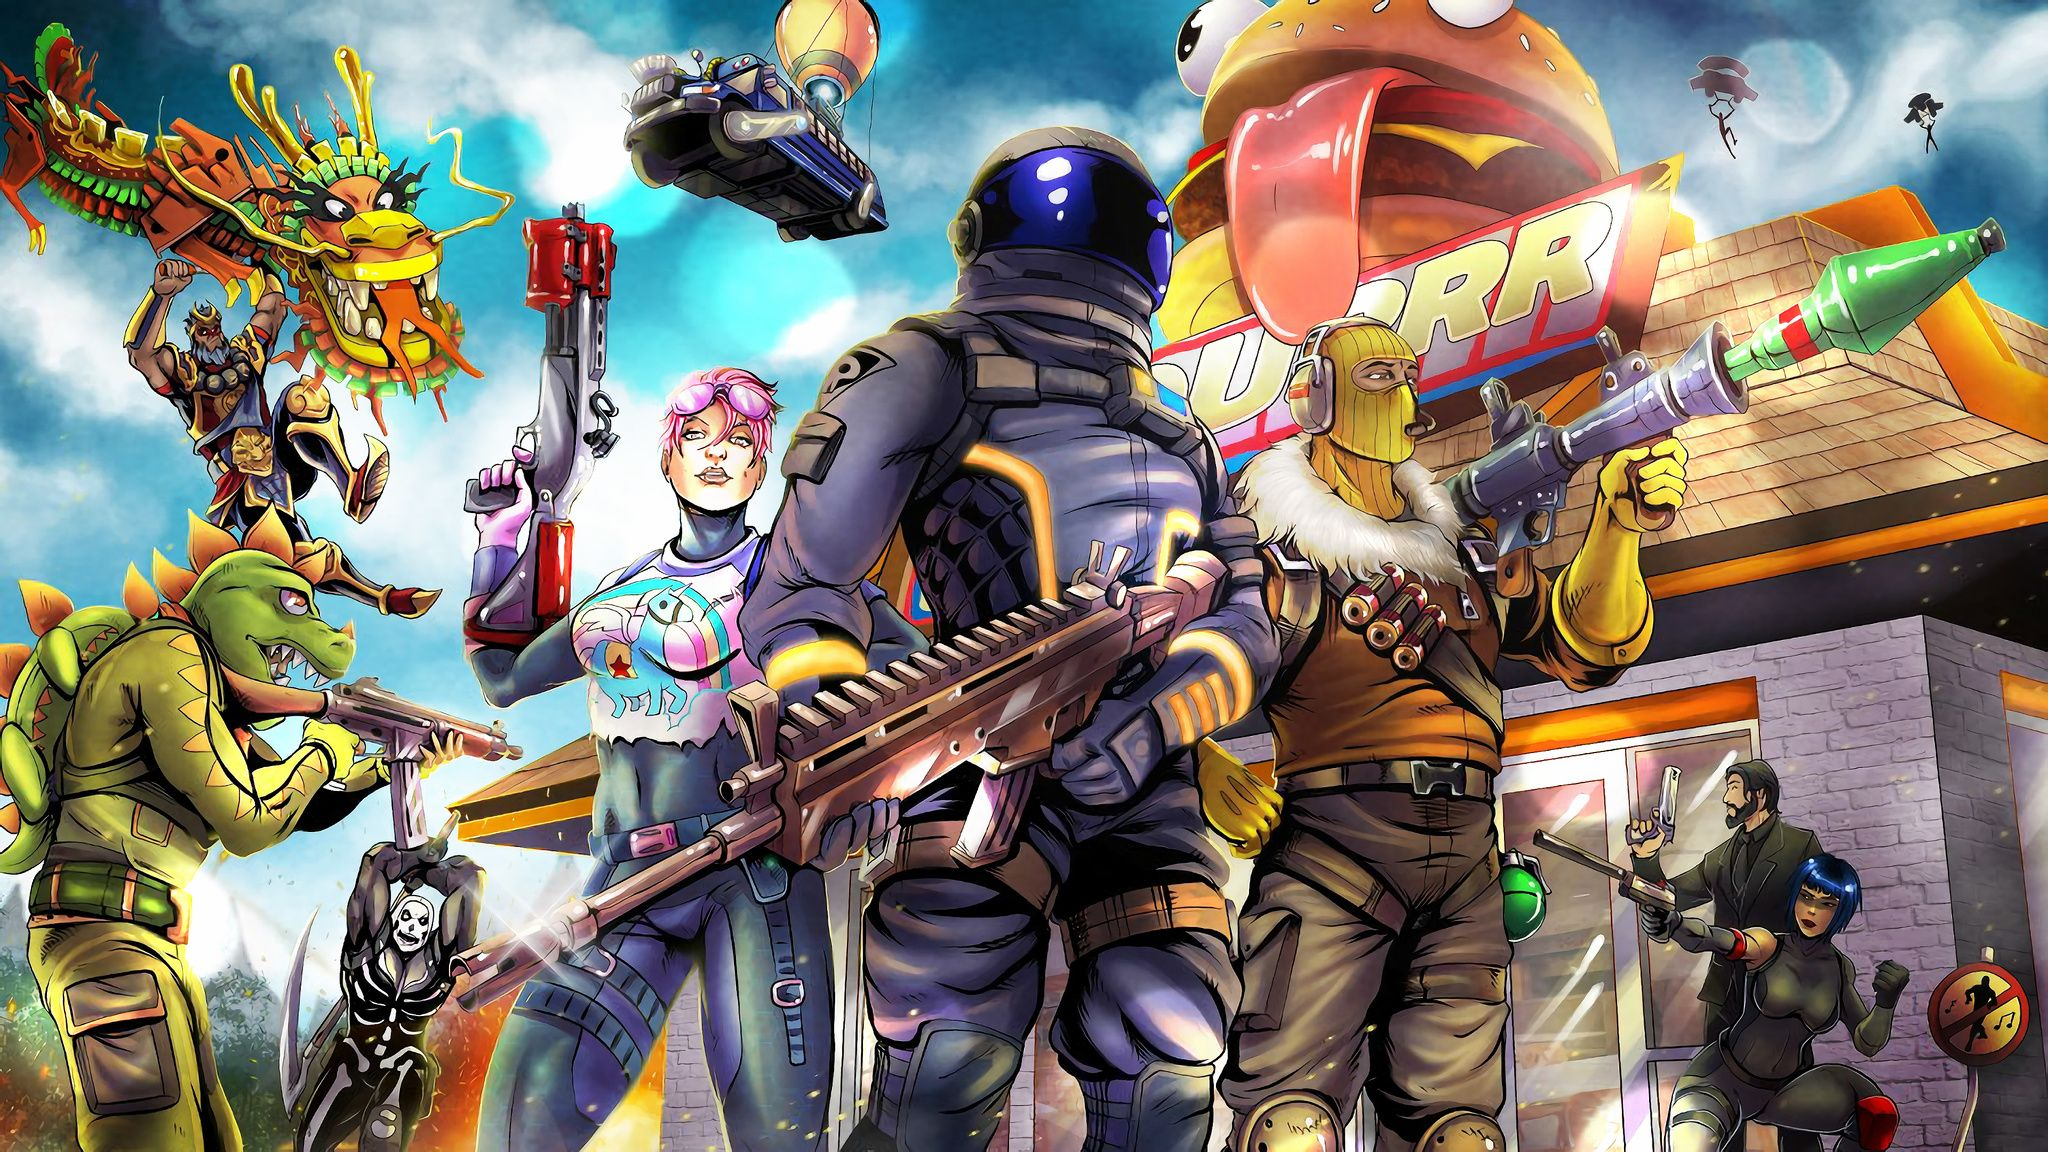 Top Fortnite 2048 1152 For Your Pc Laptop And Cell Phones Explore A Lot Of Fortnite 2048 1152 Backgrounds Here You Will F Wallpaper Pc Fortnite Hd Wallpaper